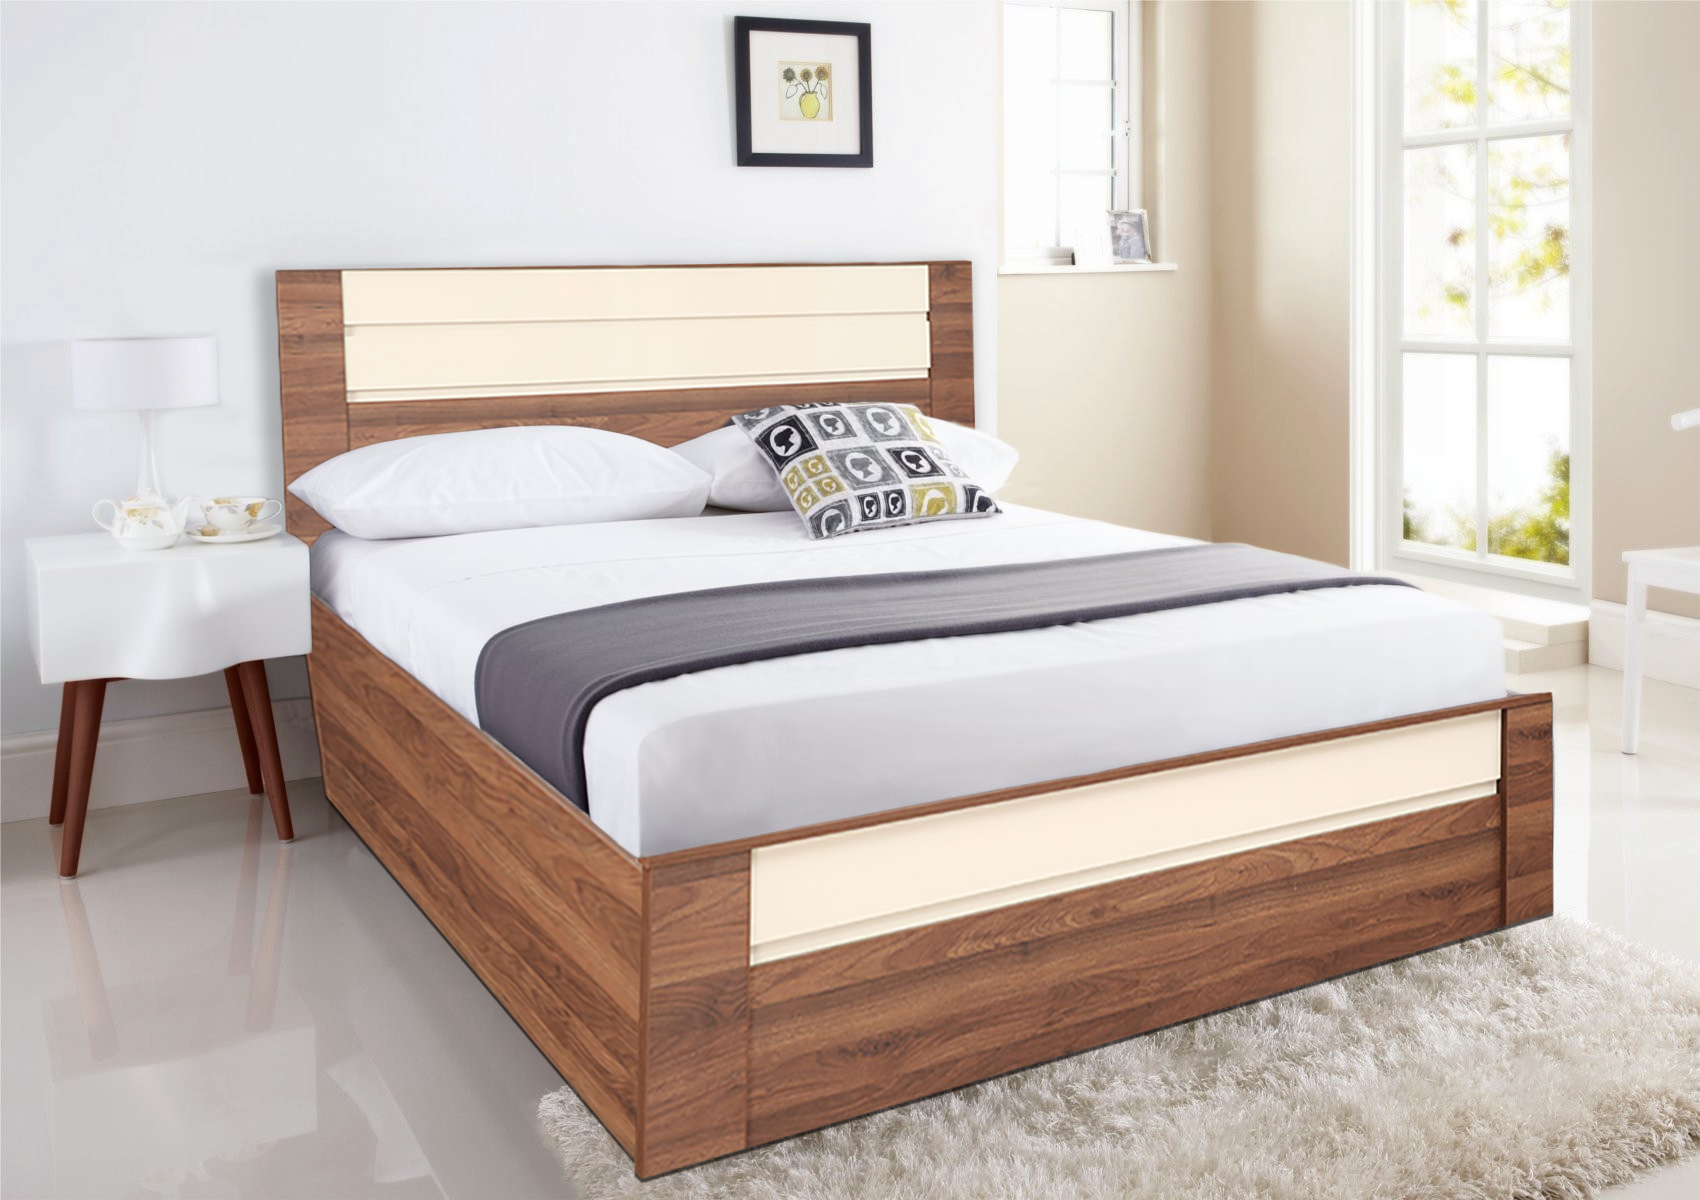 Ambrosia Engineered Wood Hydraulic Storage King Size Bed in Wallnut & Off White Colour by HomeTown